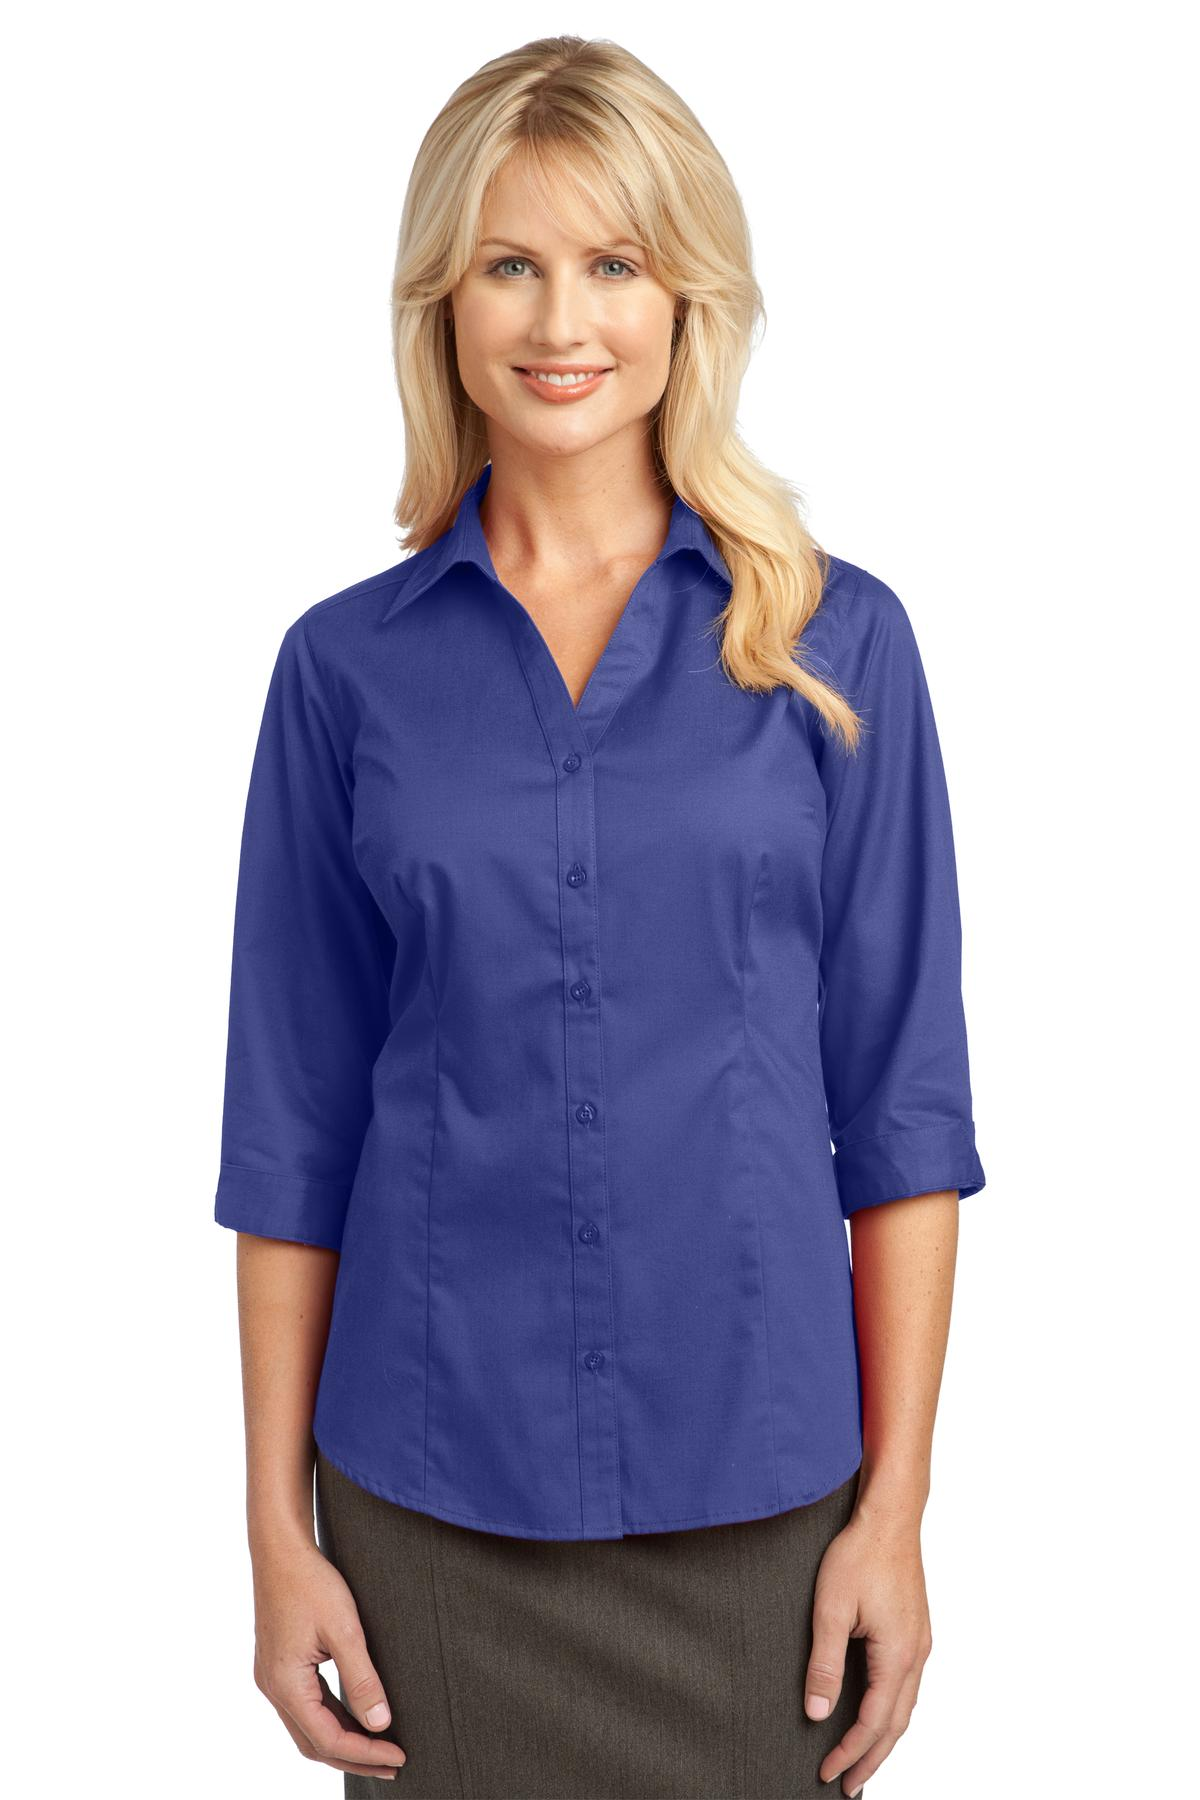 L6290-Improved Port Authority® Ladies 3/4-Sleeve Blouse.-